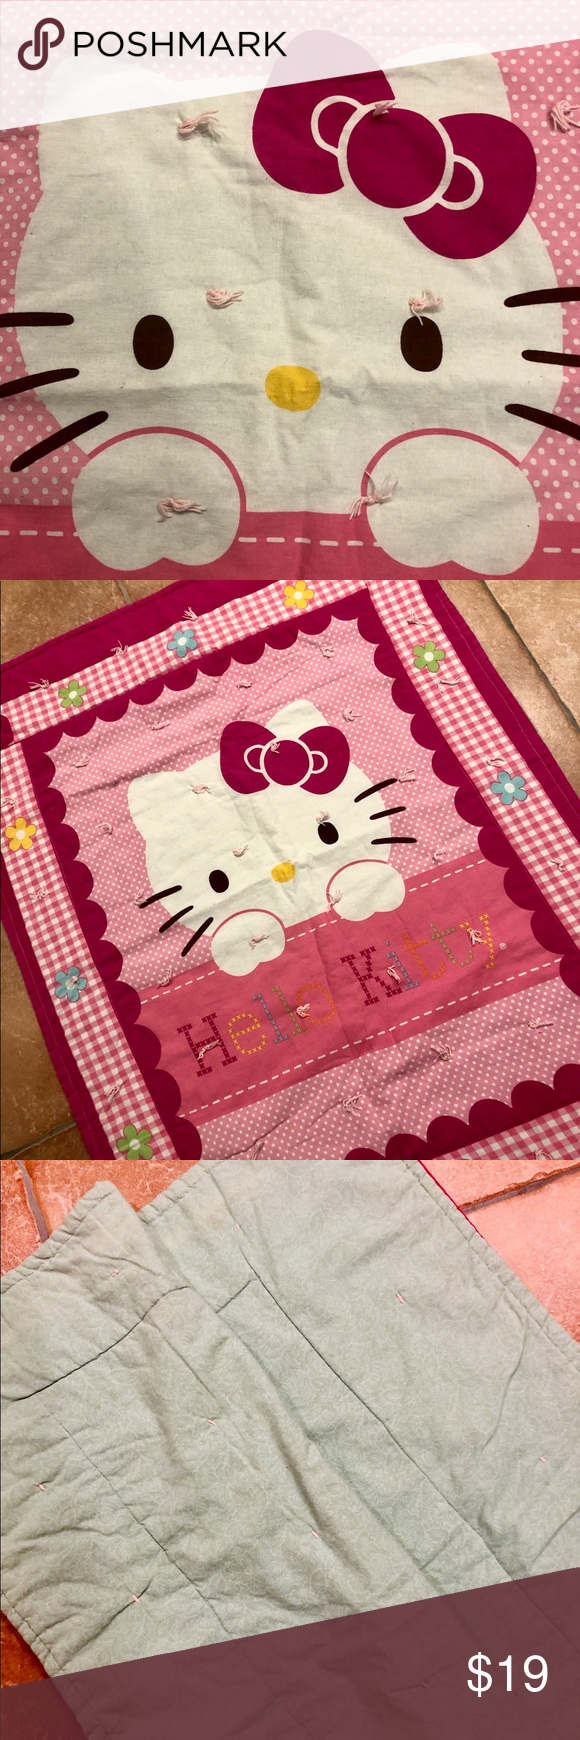 Hello Kitty Baby Blanket Hello Kitty Quilted Baby Blanket Approx 30 X40 No Stains No R Hello Kitty Baby Blanket Hello Kitty Baby Hello Kitty Accessories